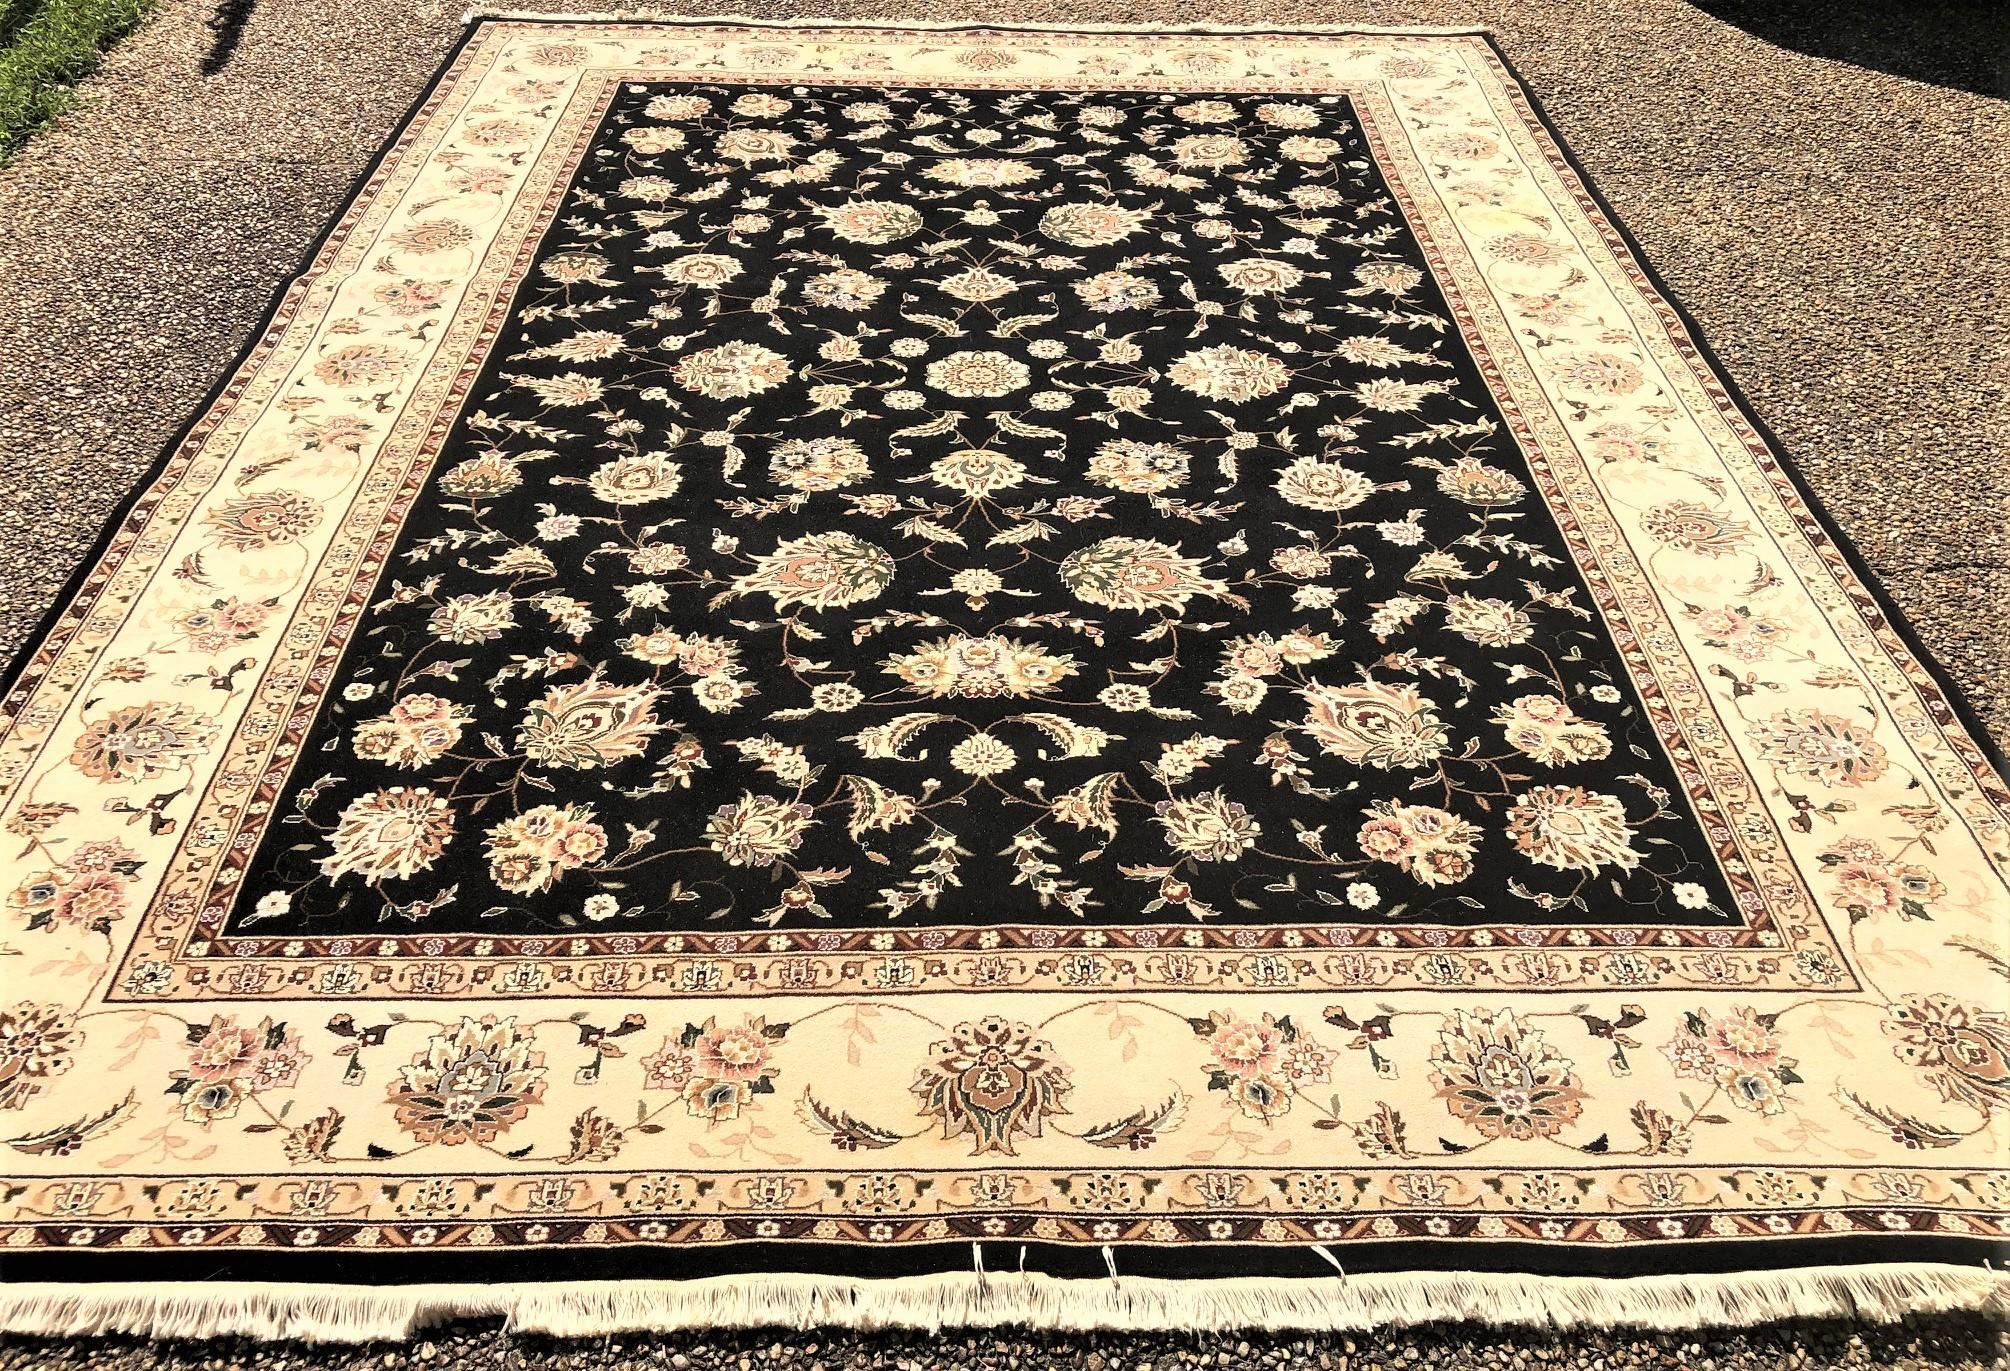 SAROUK WOOL AND SILK HAND KNOTTED RUG - 8.6 x 11.6